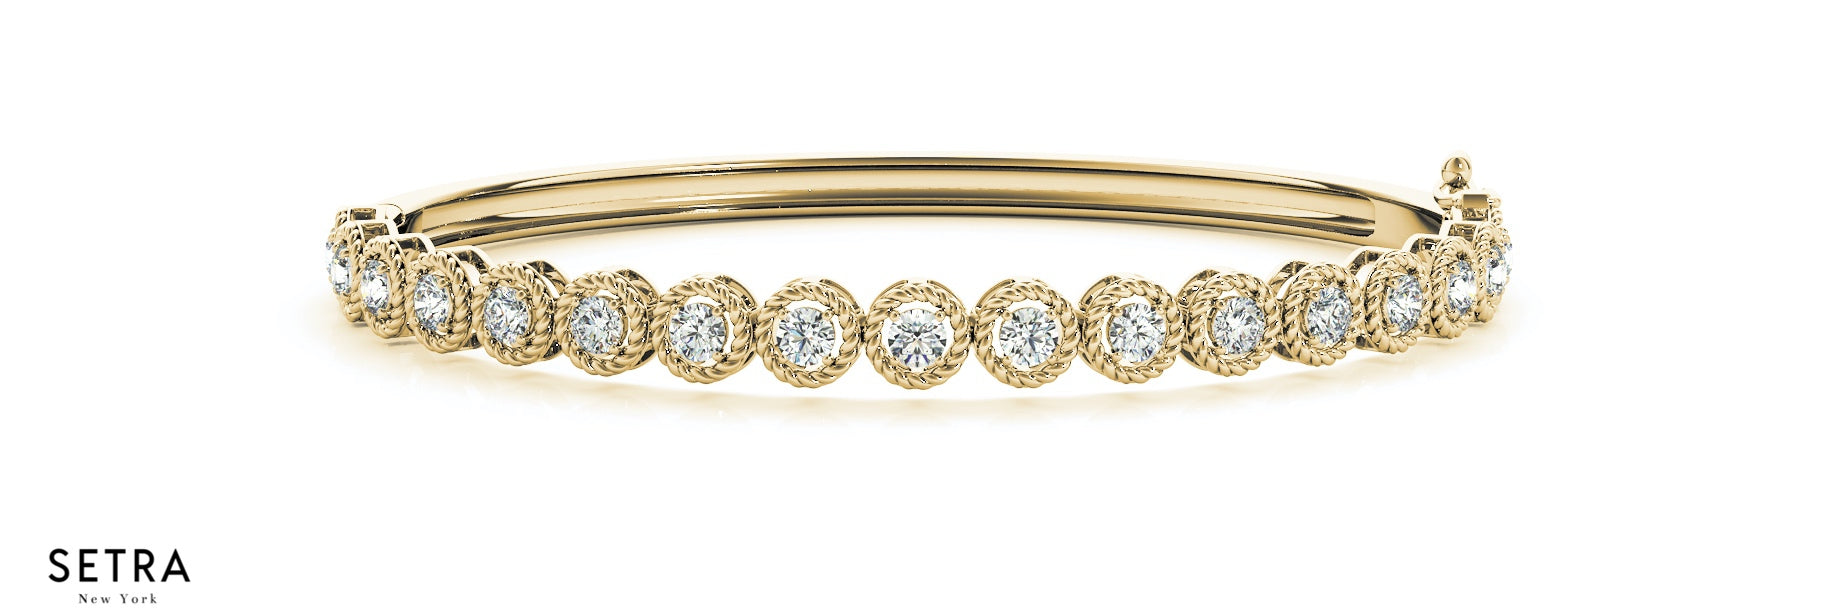 row gold bangles image white jewellery from lucia diamond berry two bangle s berrys scattered